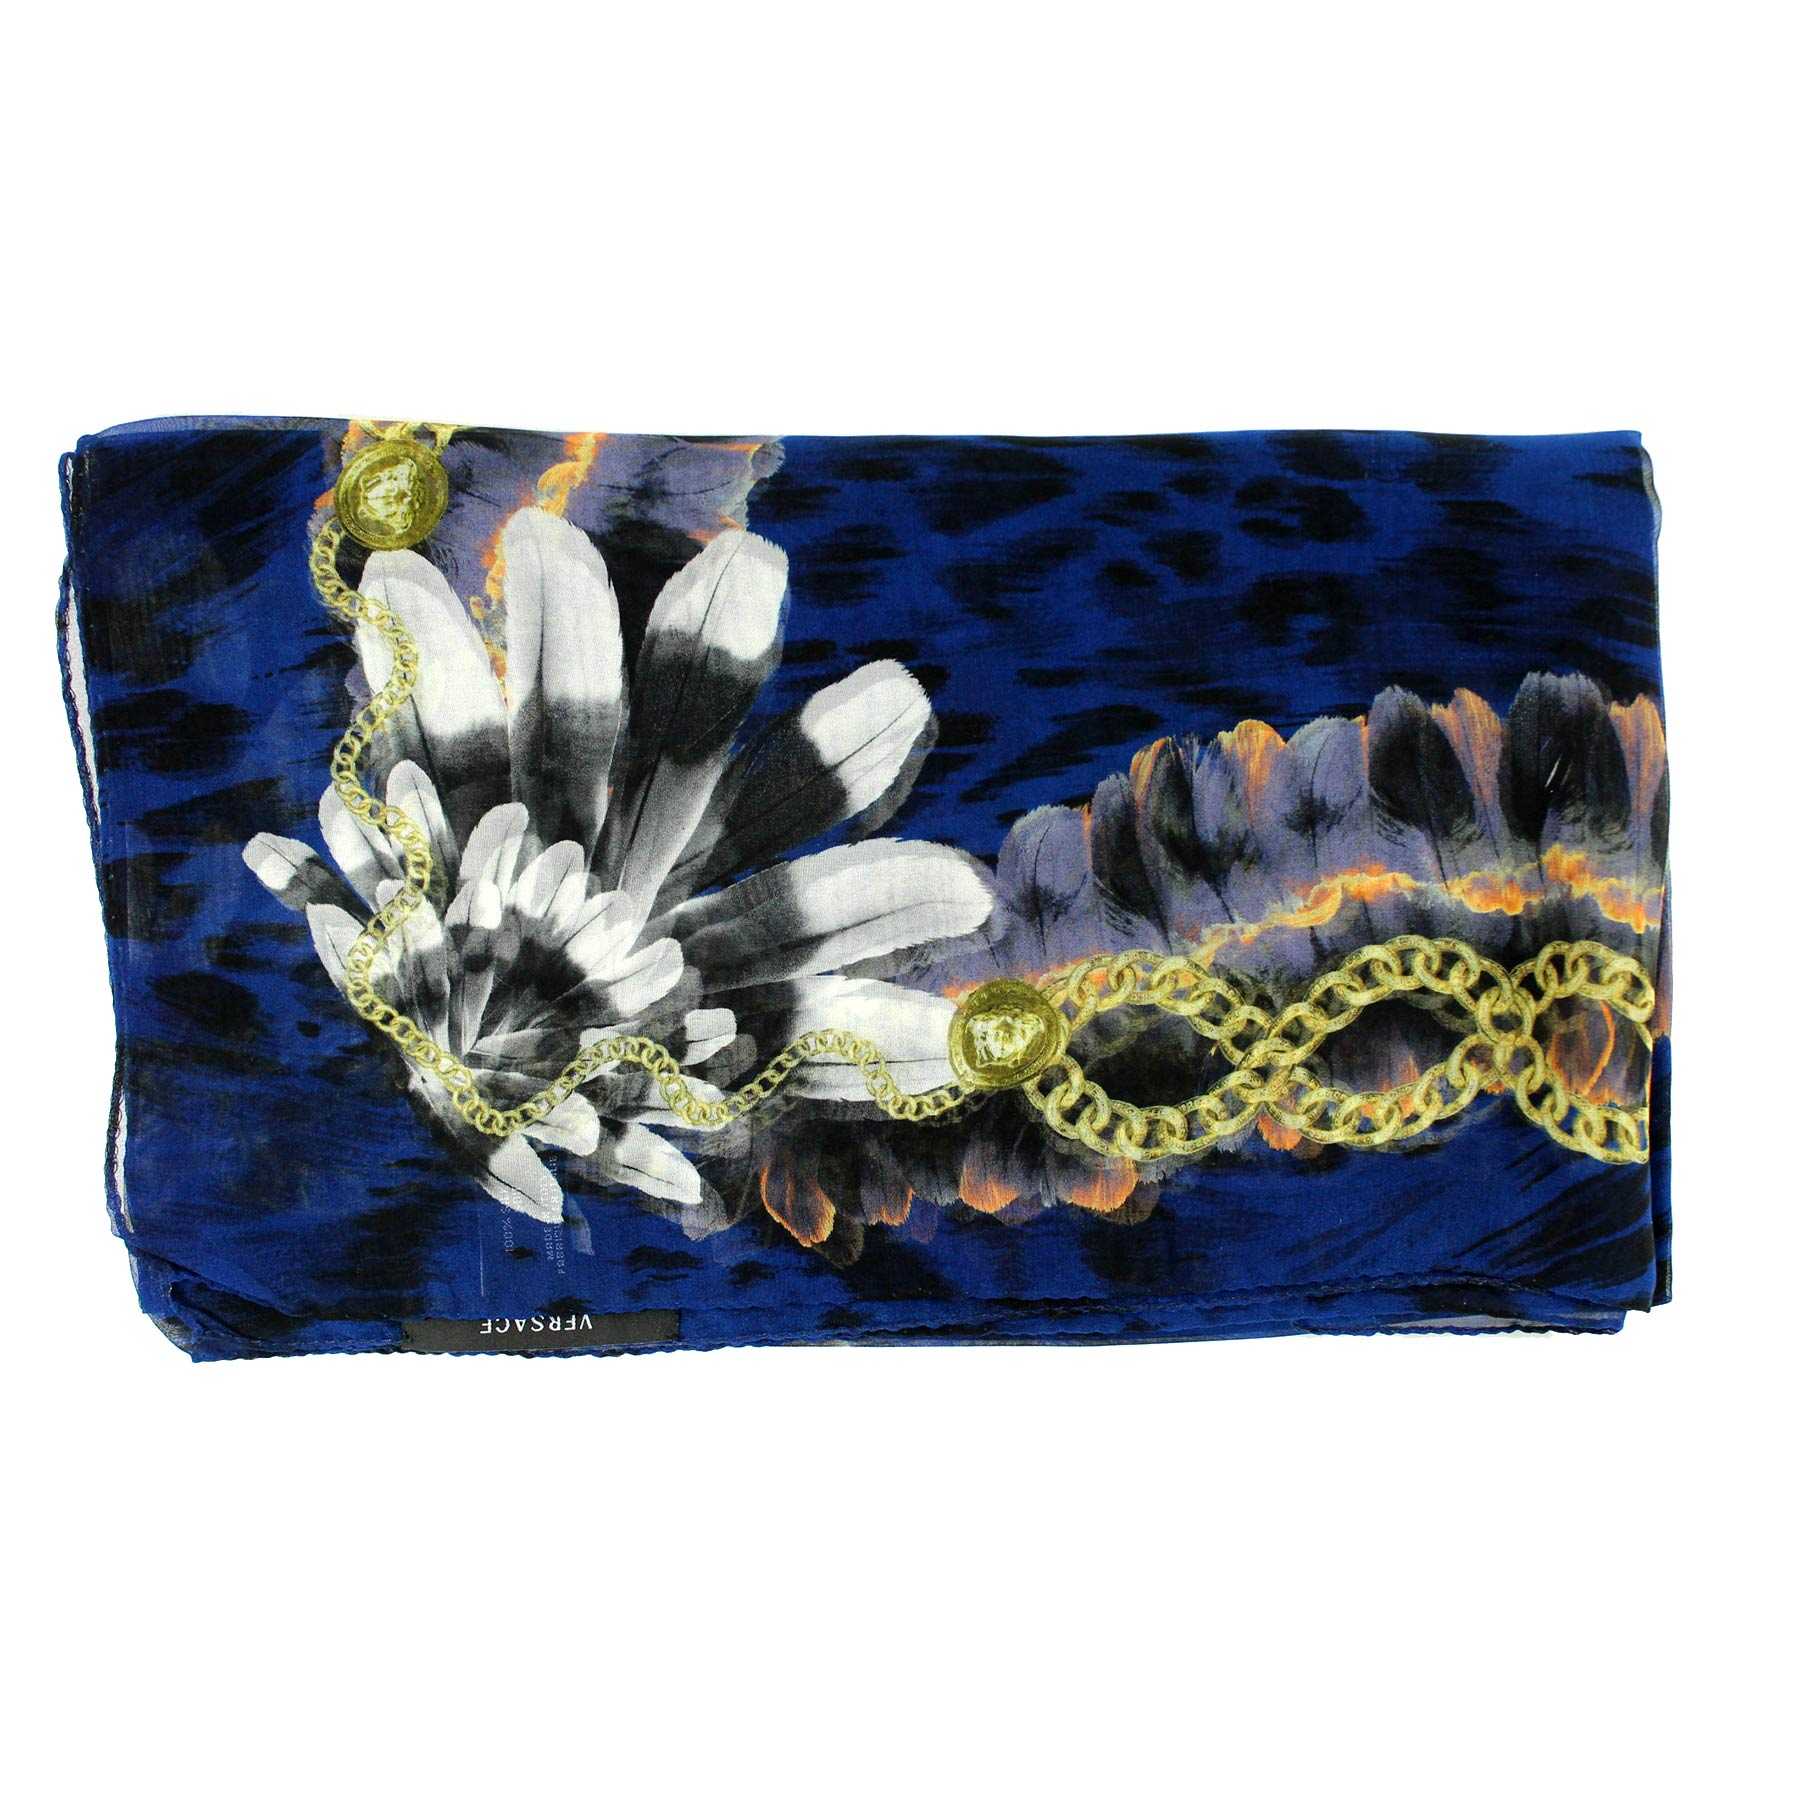 Versace Scarf Midnight Blue Indian Feather Headdress - Chiffon Silk Shawl